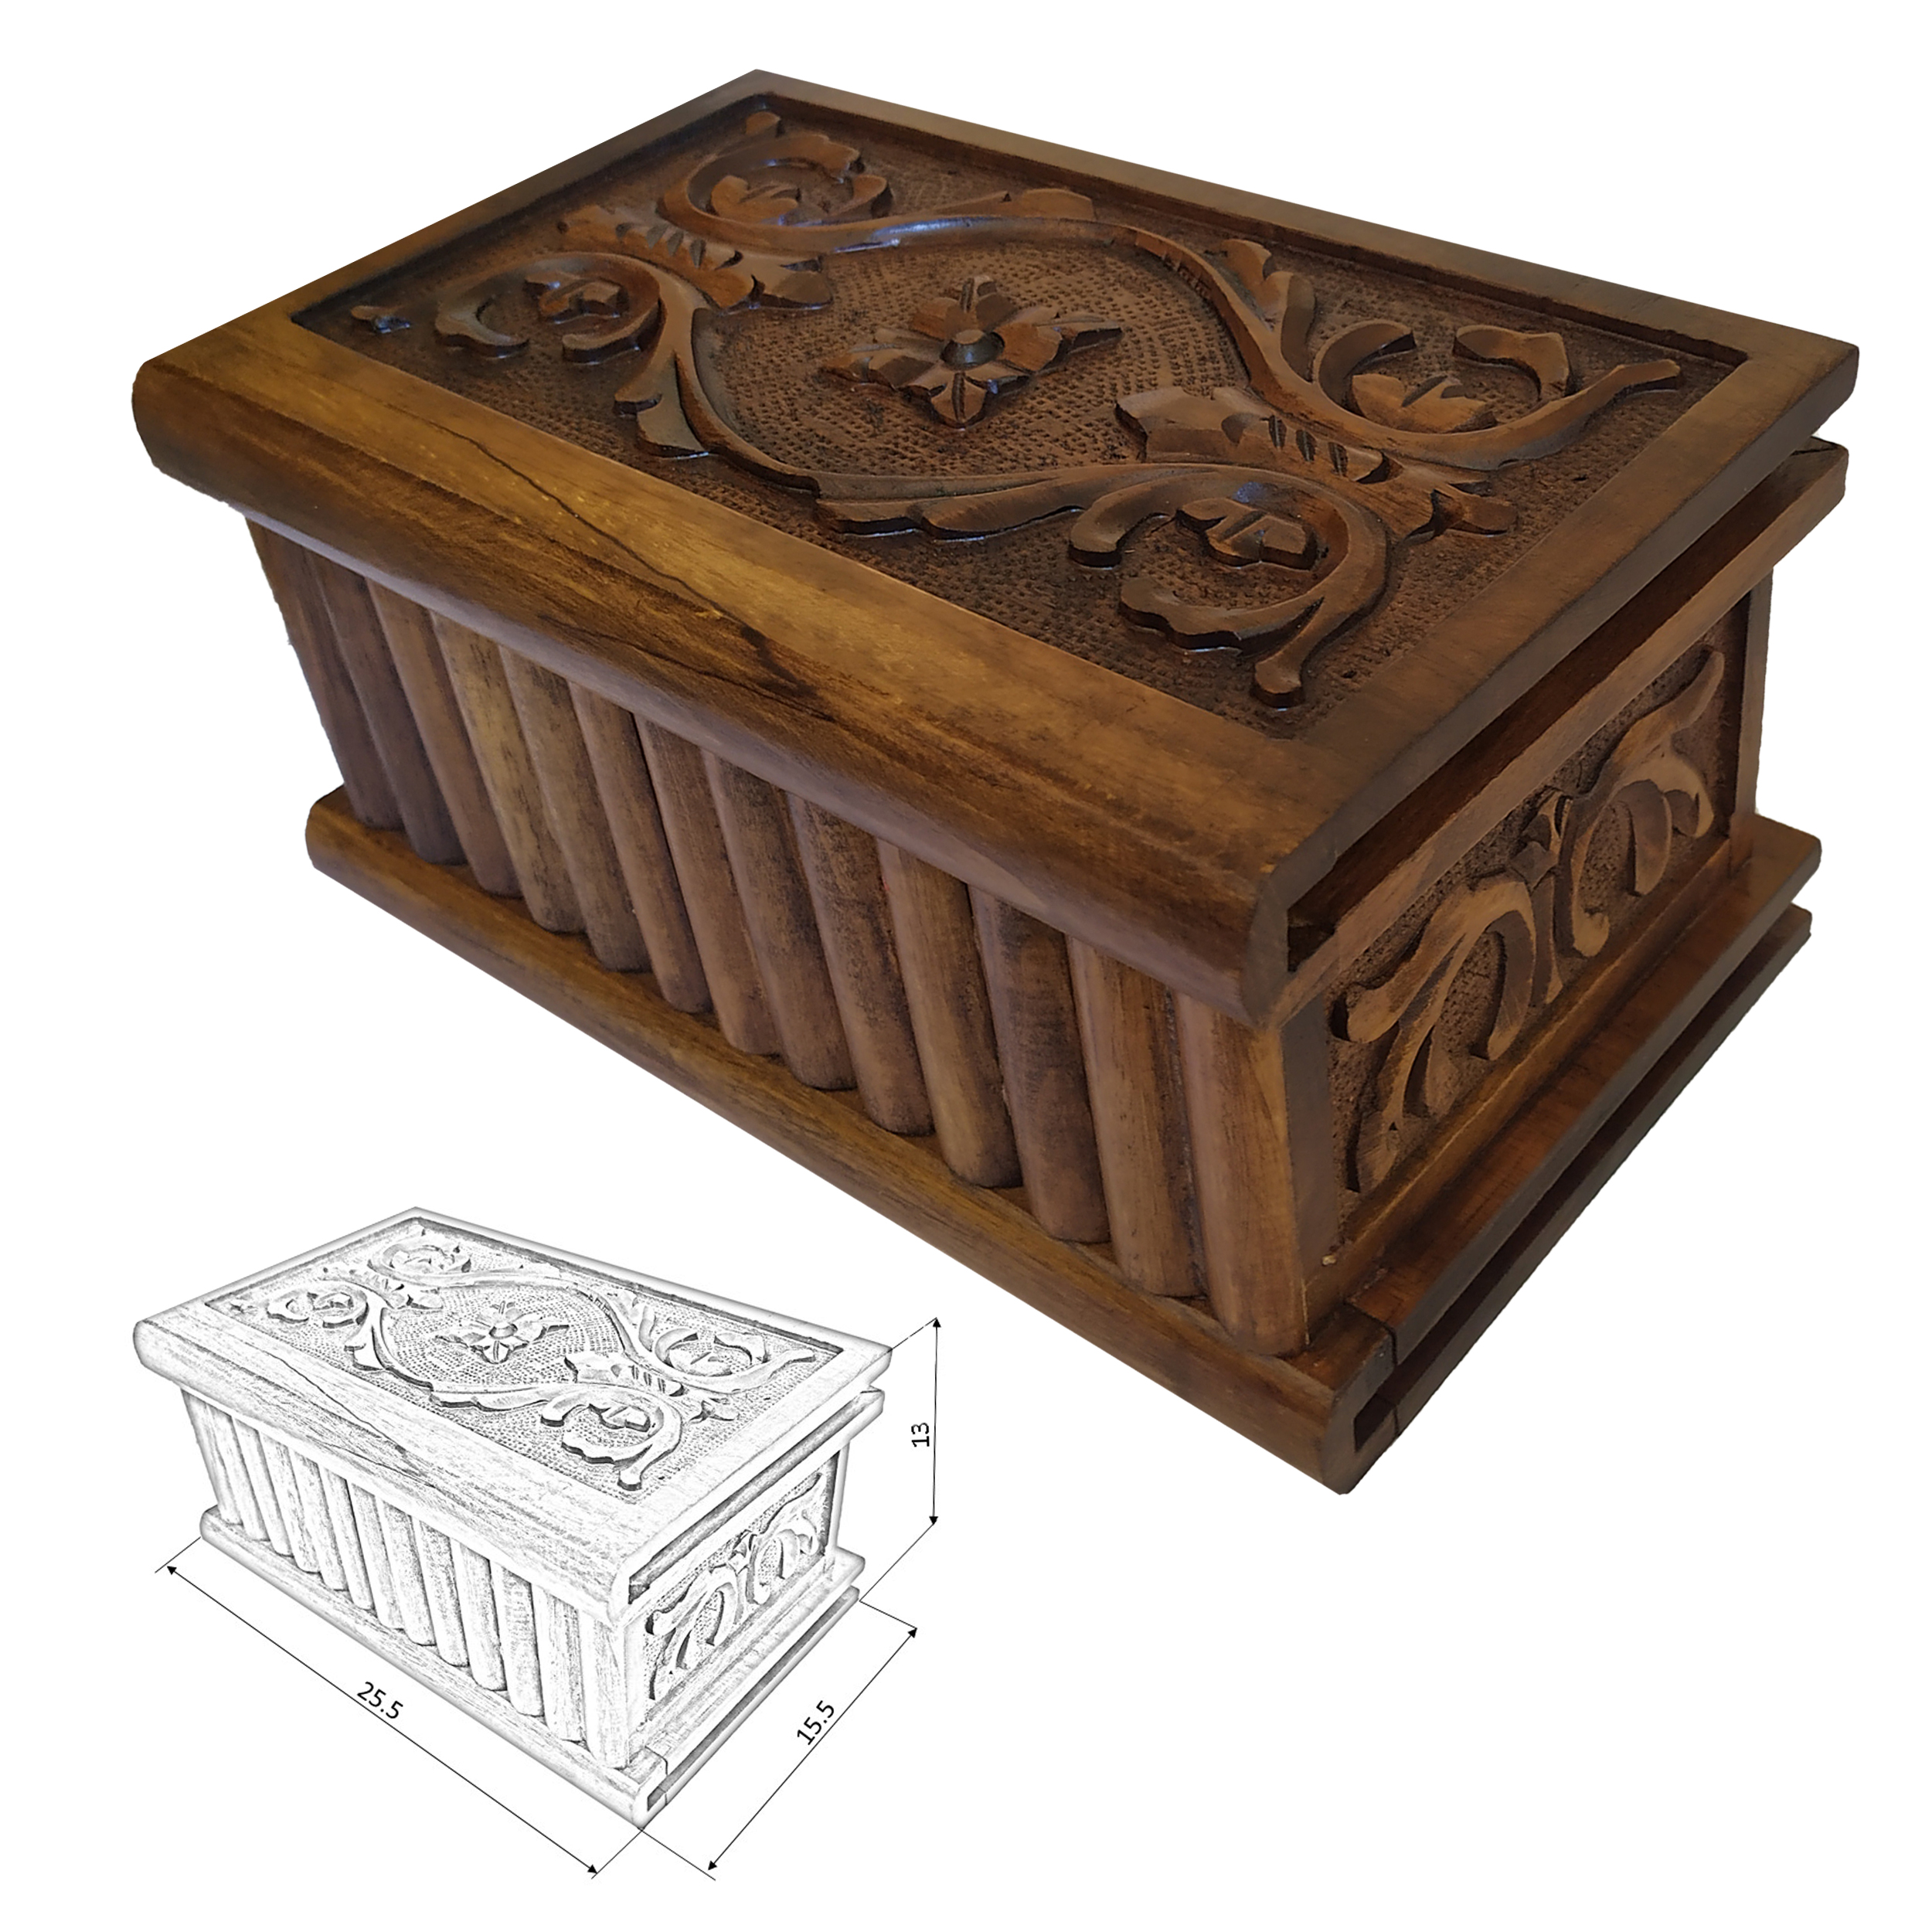 handmade wood carving box, G1 model